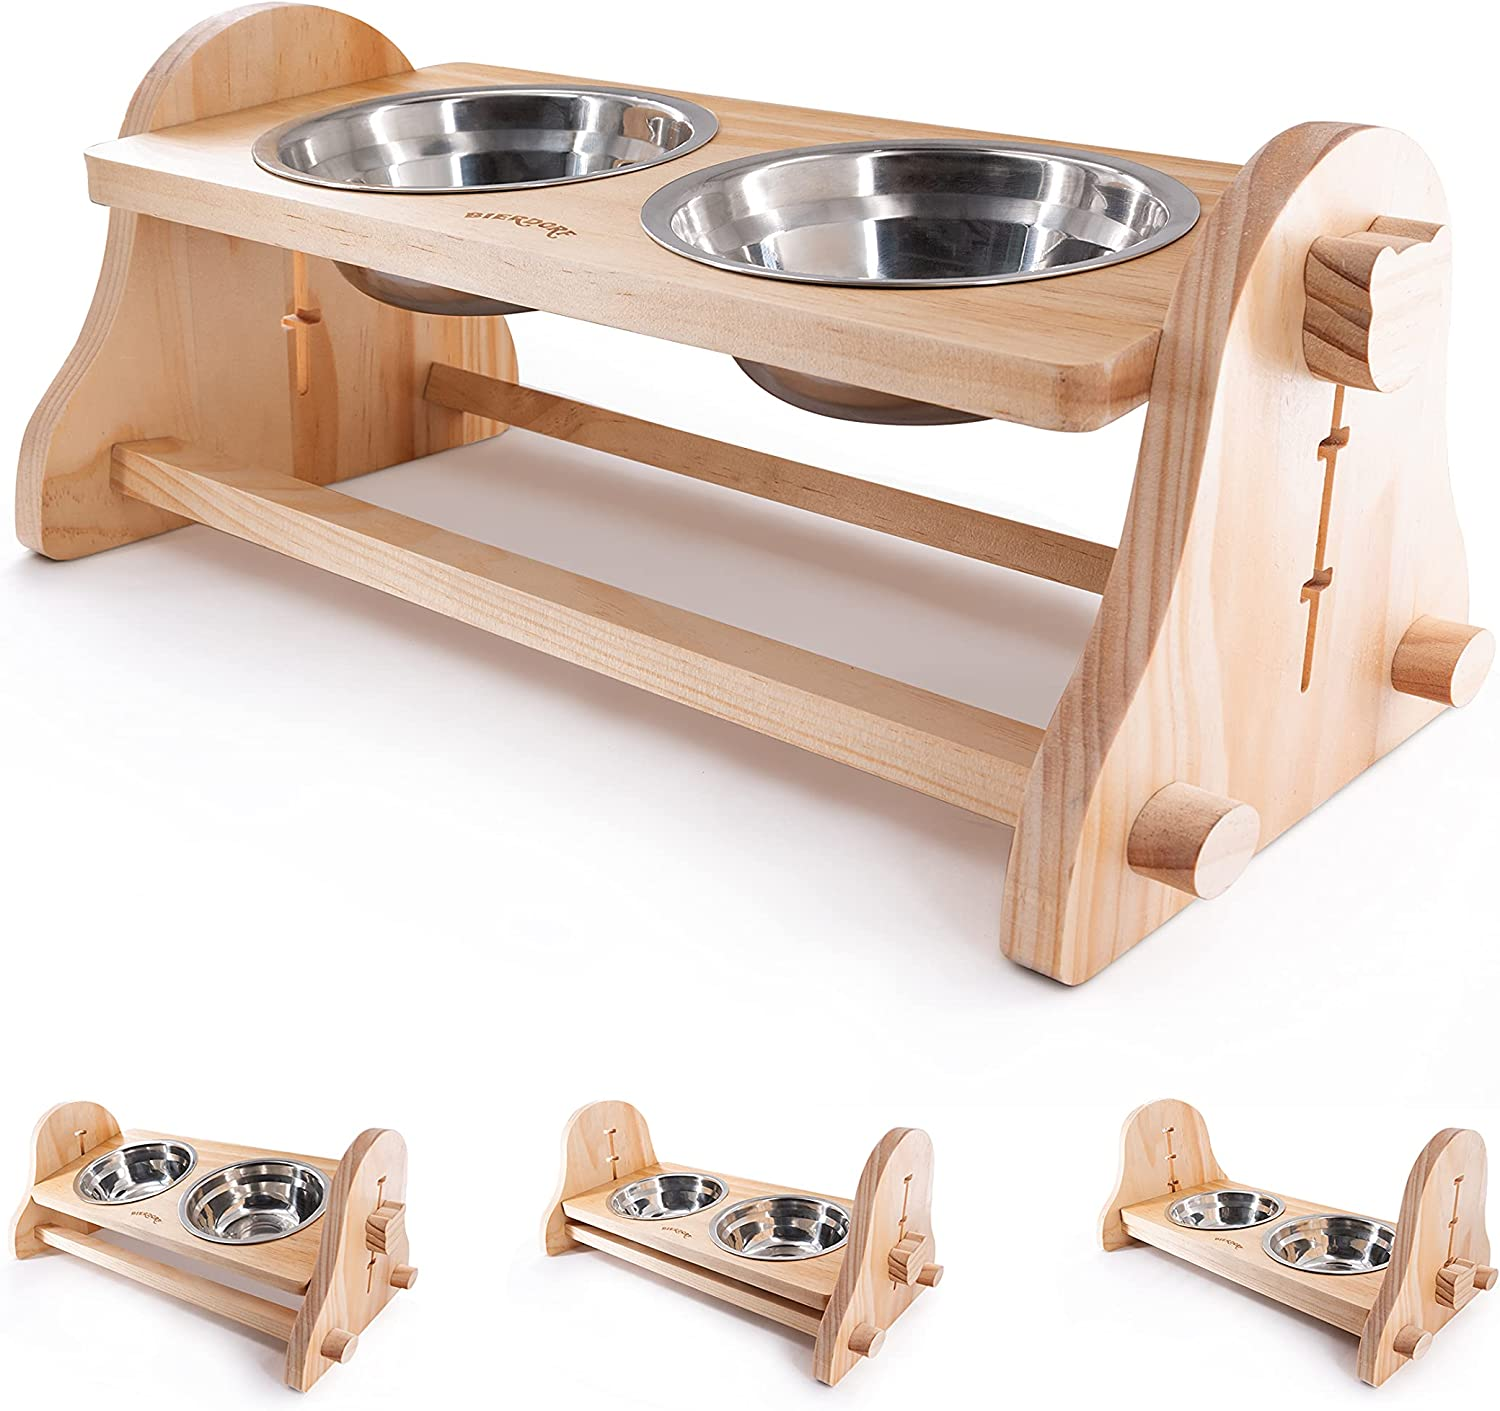 BIERDORF Elevated Dog Bowls Raised Pet Bowls for Cats and Small Dogs, Adjustable Elevated Dog Cat Food and Water Bowls Stand Feeder with 2 Stainless Steel Bowls (3'' Tall-20 oz Bowl)